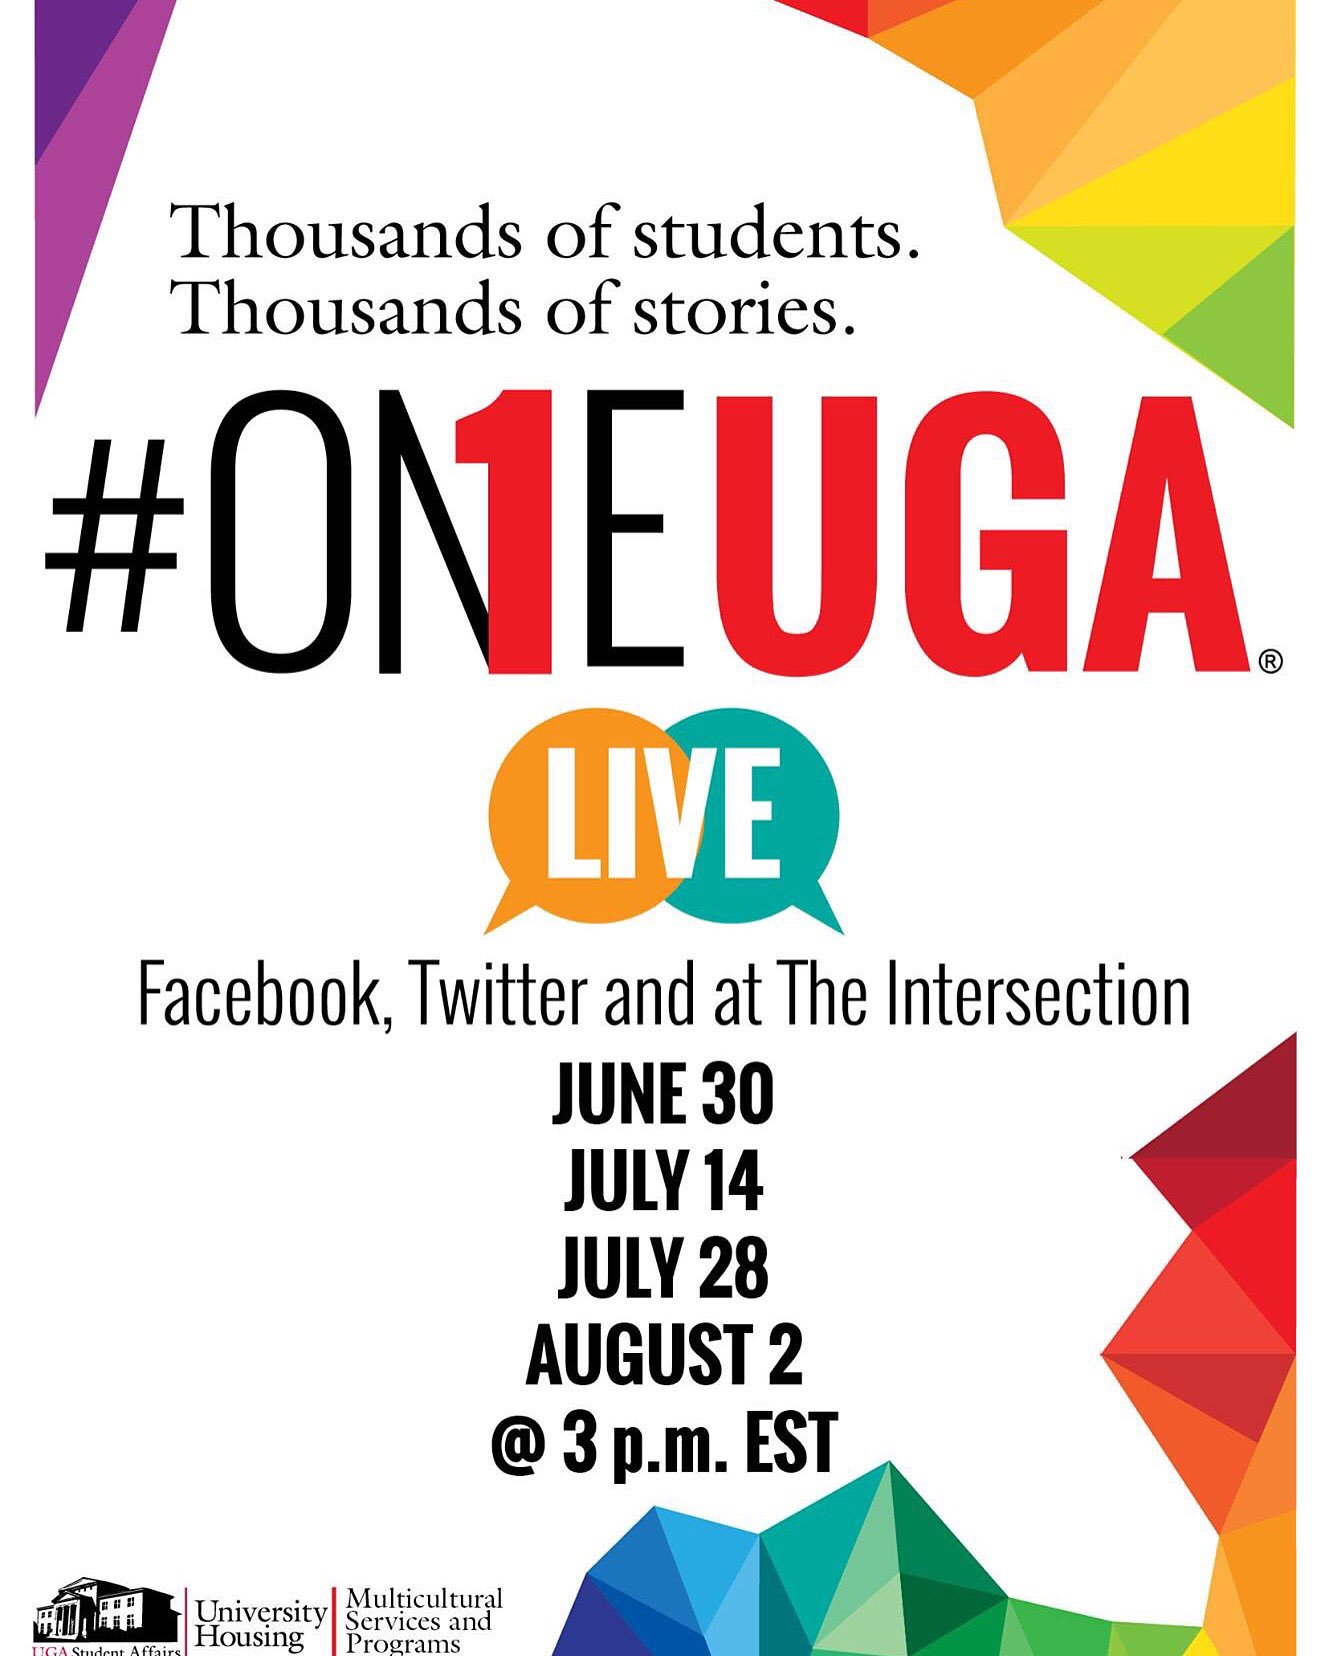 It's today! Join us for the #OneUGA chat at 3 pm to talk with current students & campus partners about #UGA life https://t.co/NAfM6i0q6U